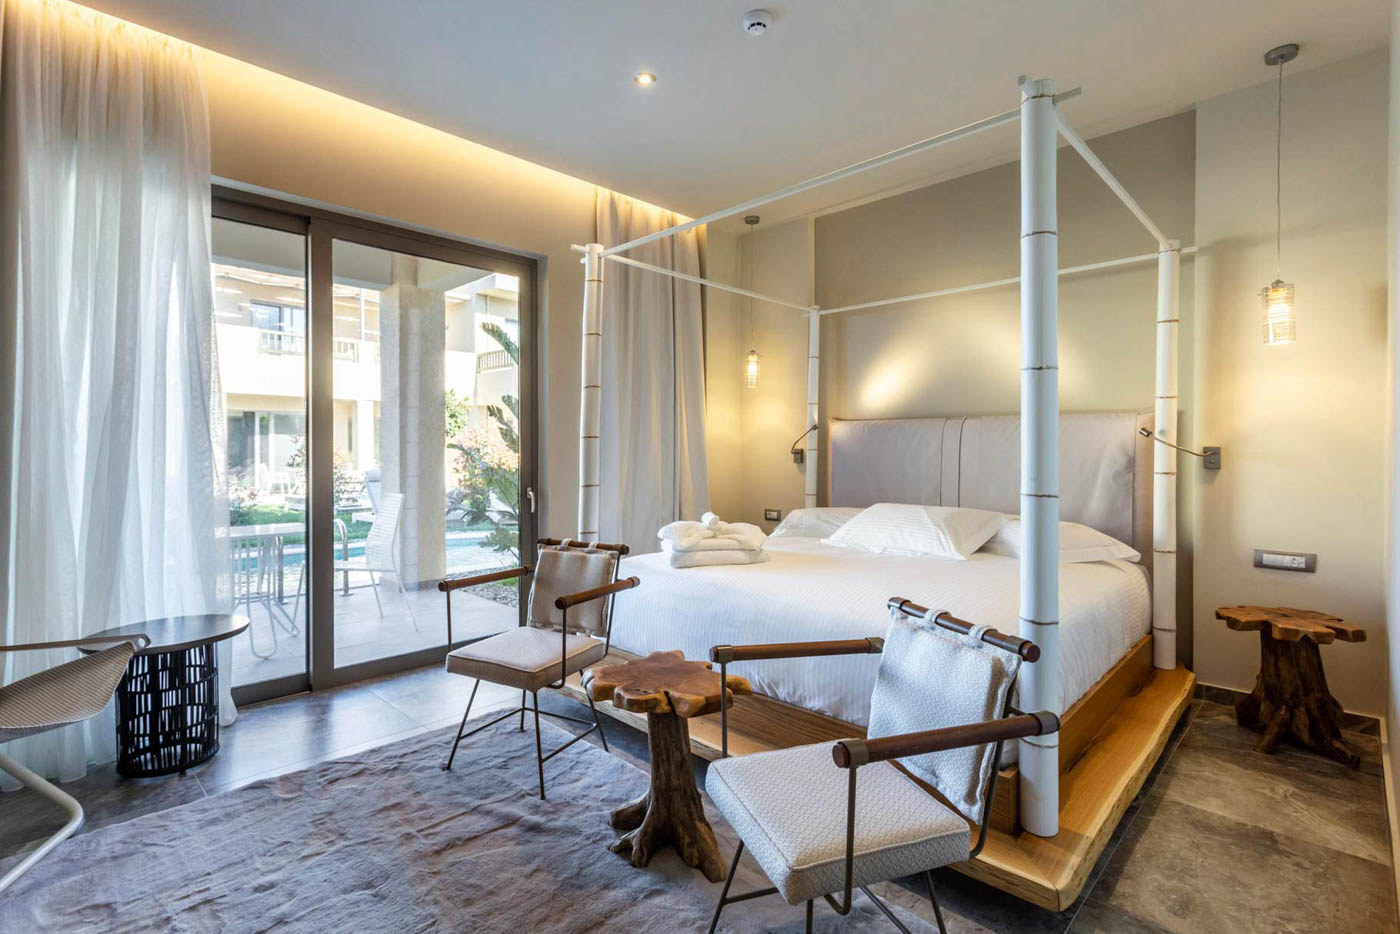 Elysian luxury hotel and spa Kalamata Junior suite bamboo bedroom with two chairs